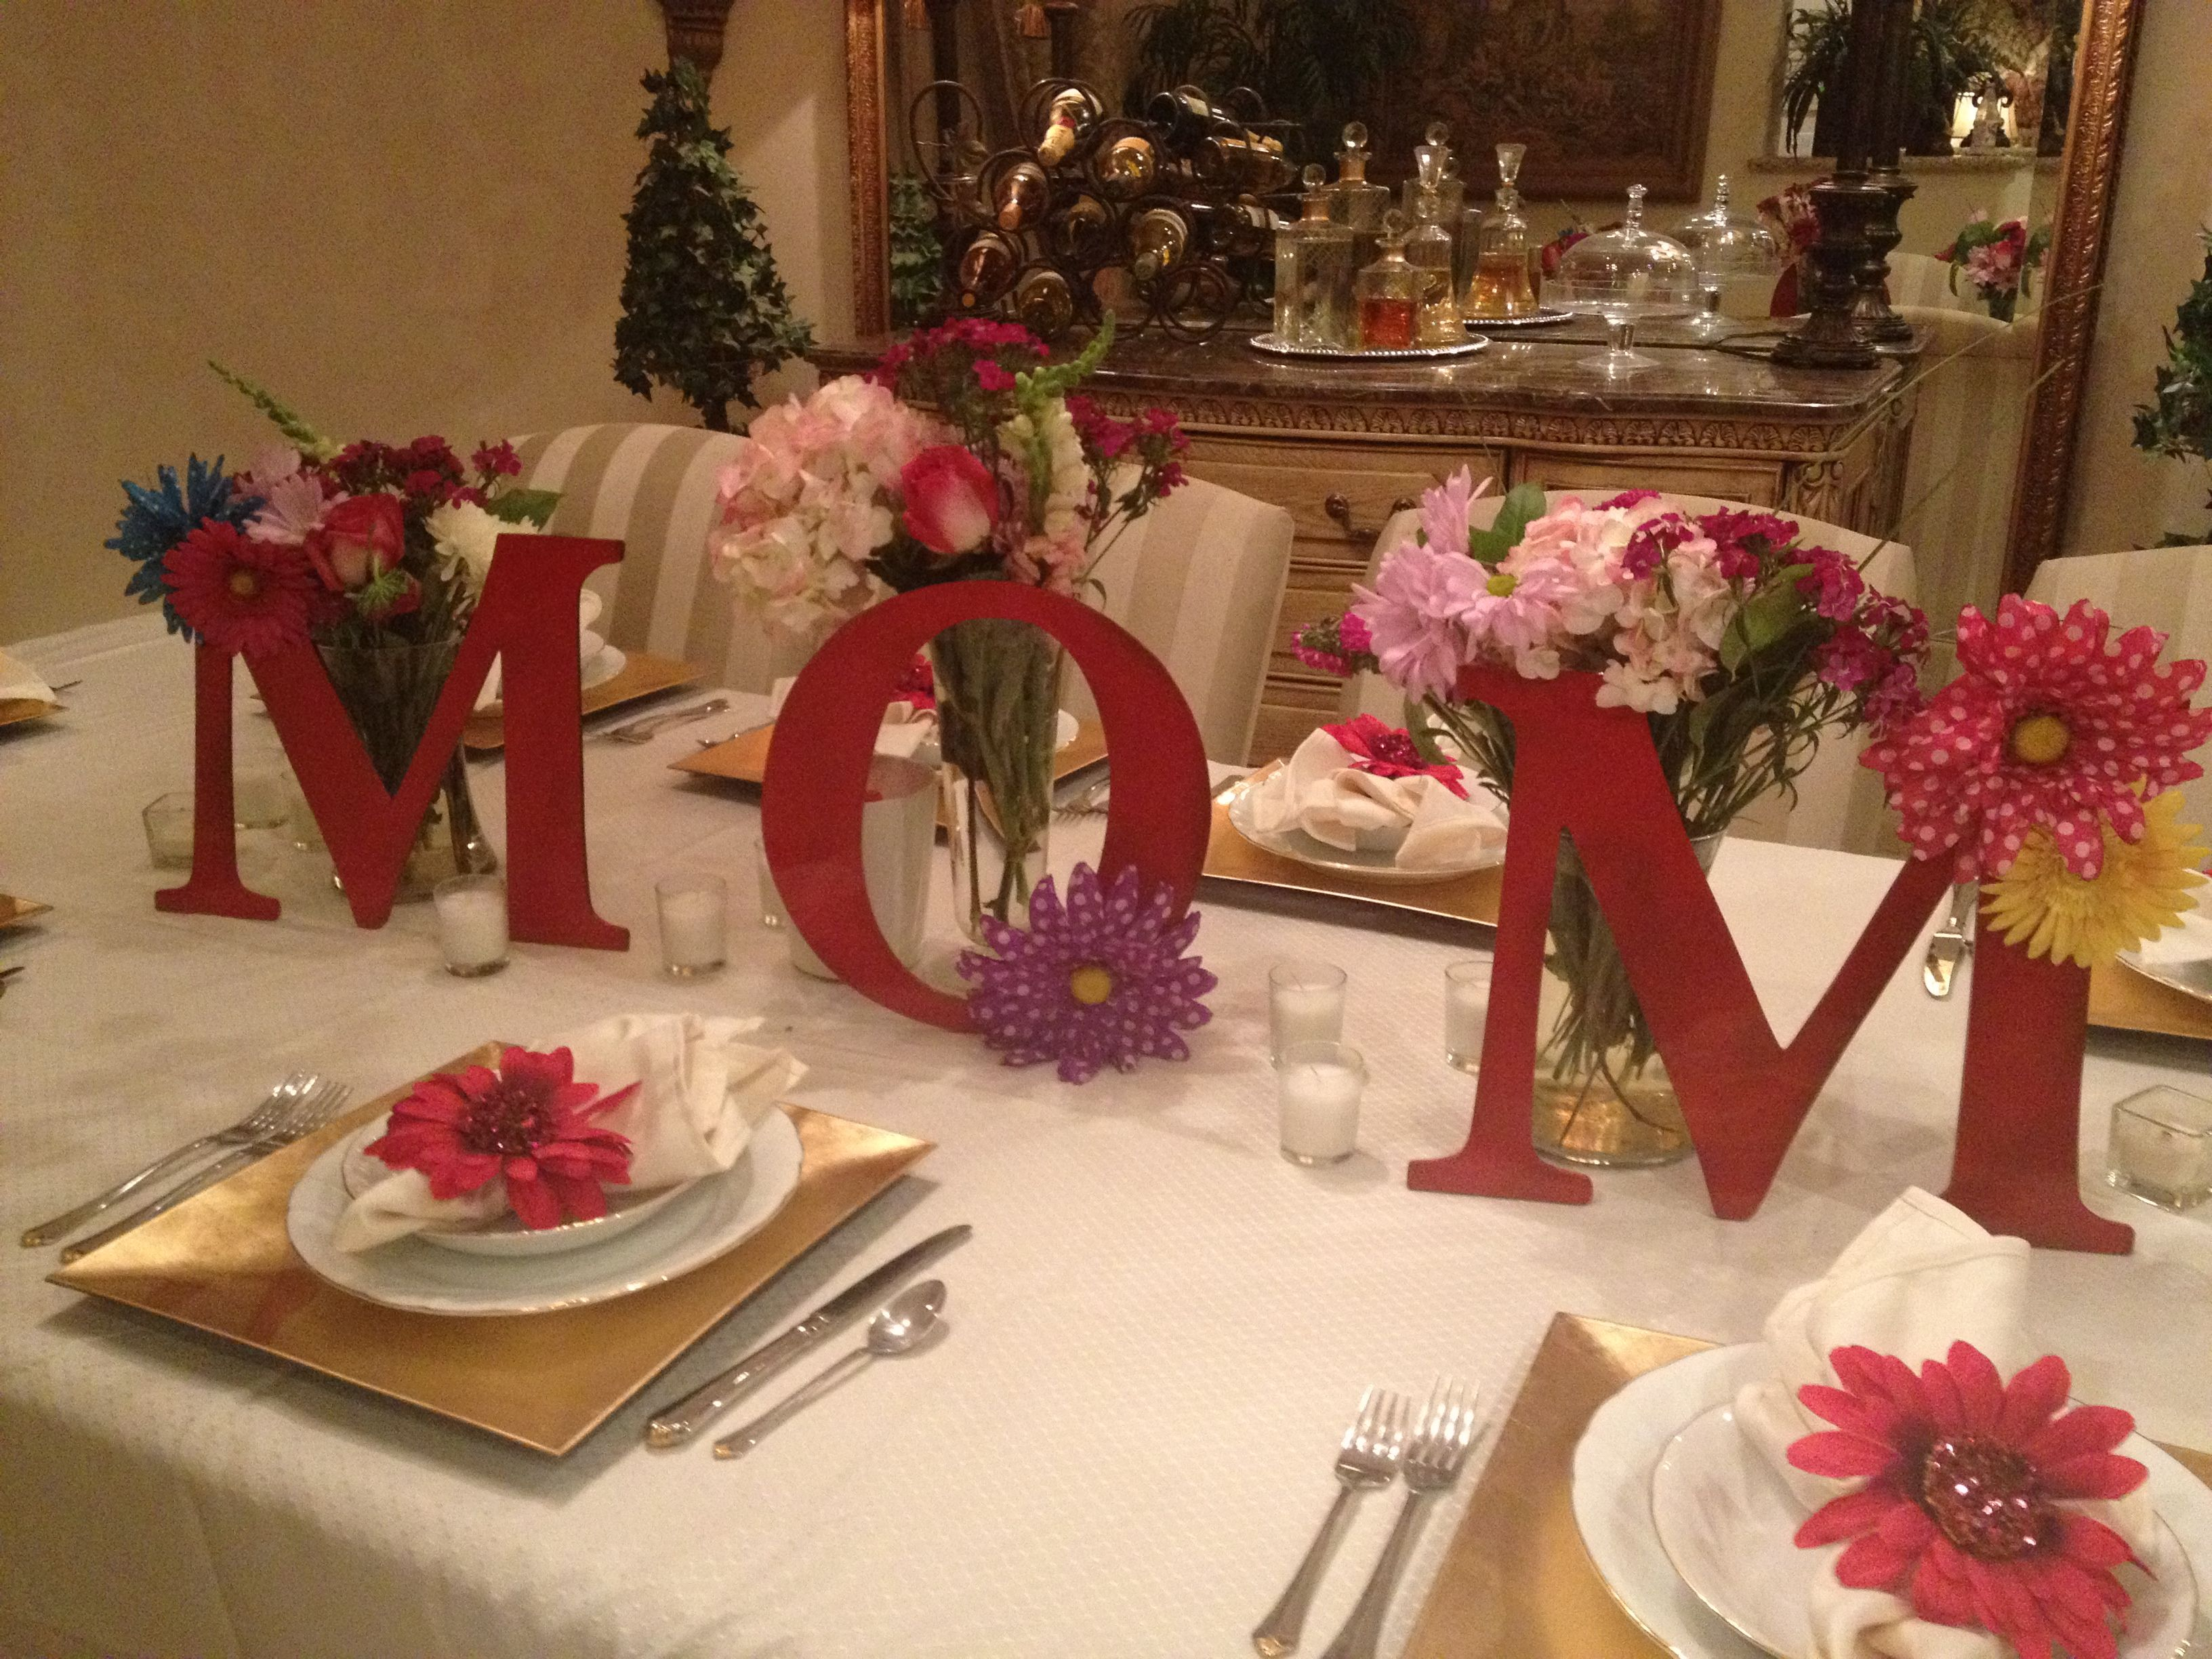 Mother's Day Dinner Table Decoration